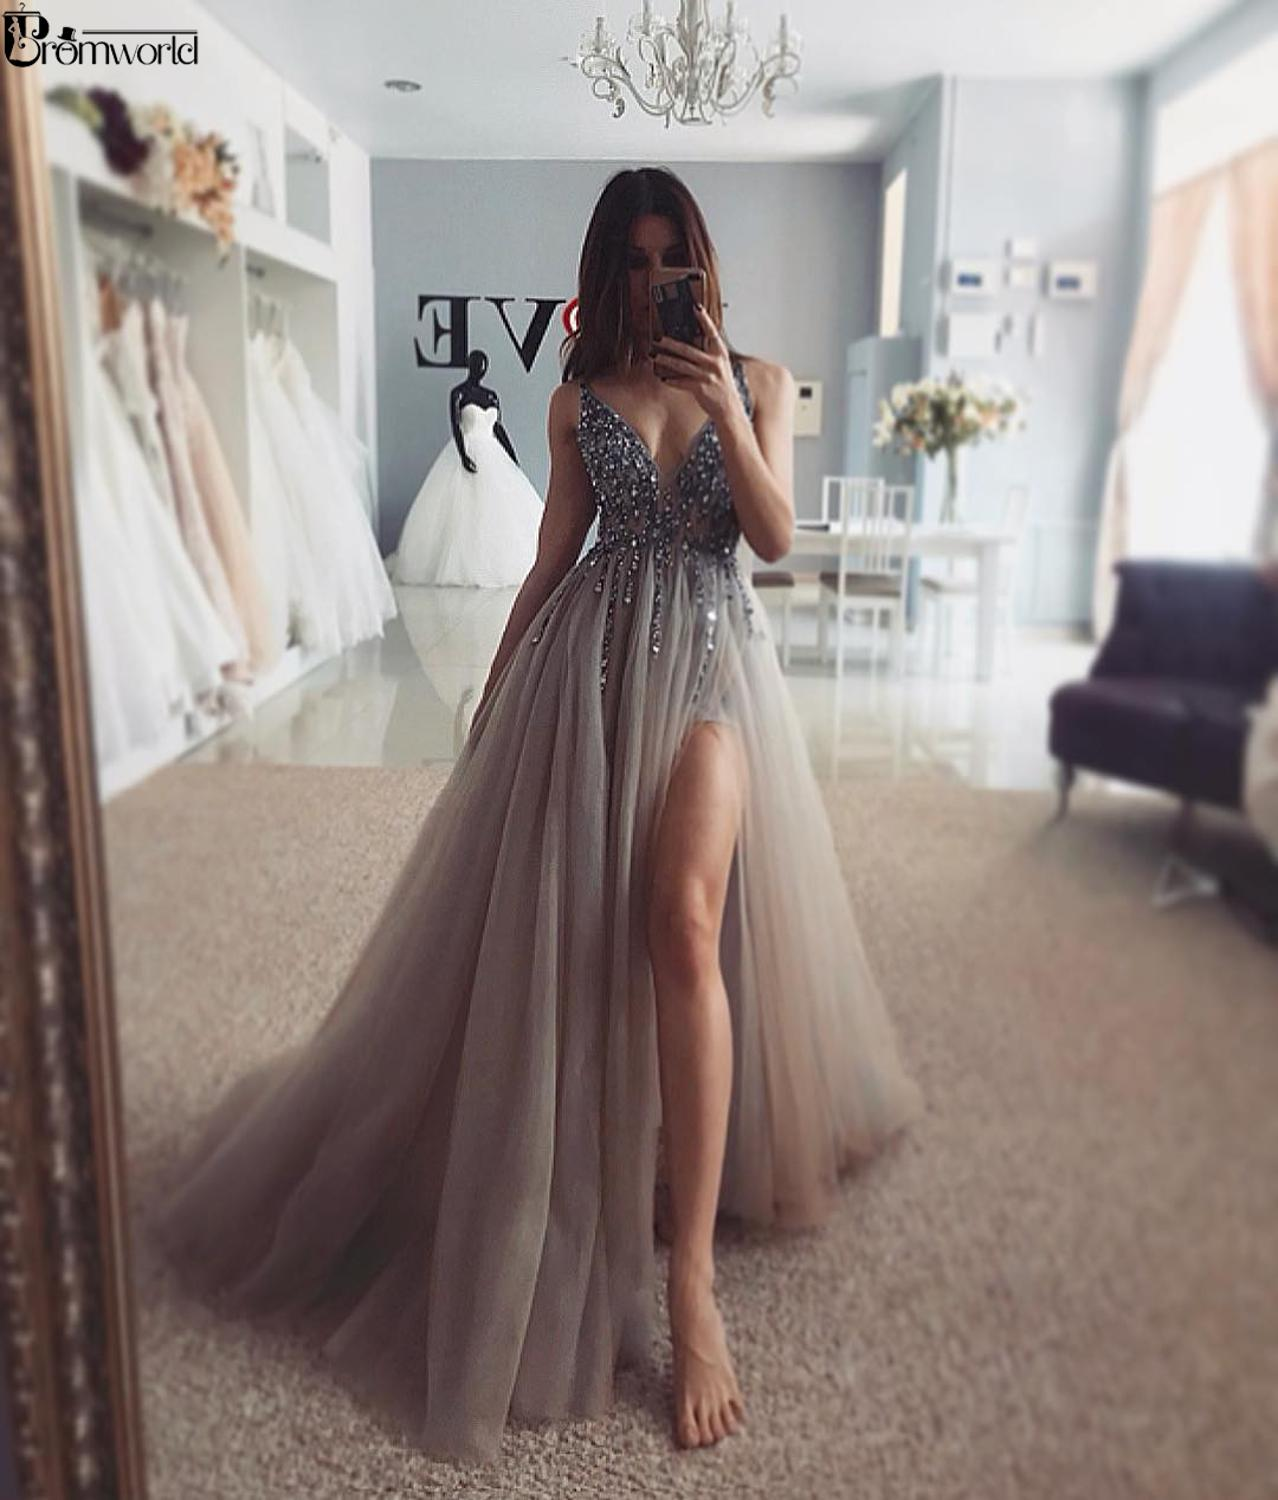 Sexy Dress Prom Long V-Neck High Slit Tulle Beaded Handmade Vestidos De Gala Crystal Formal Party Gown Gray Prom Dresses 2019